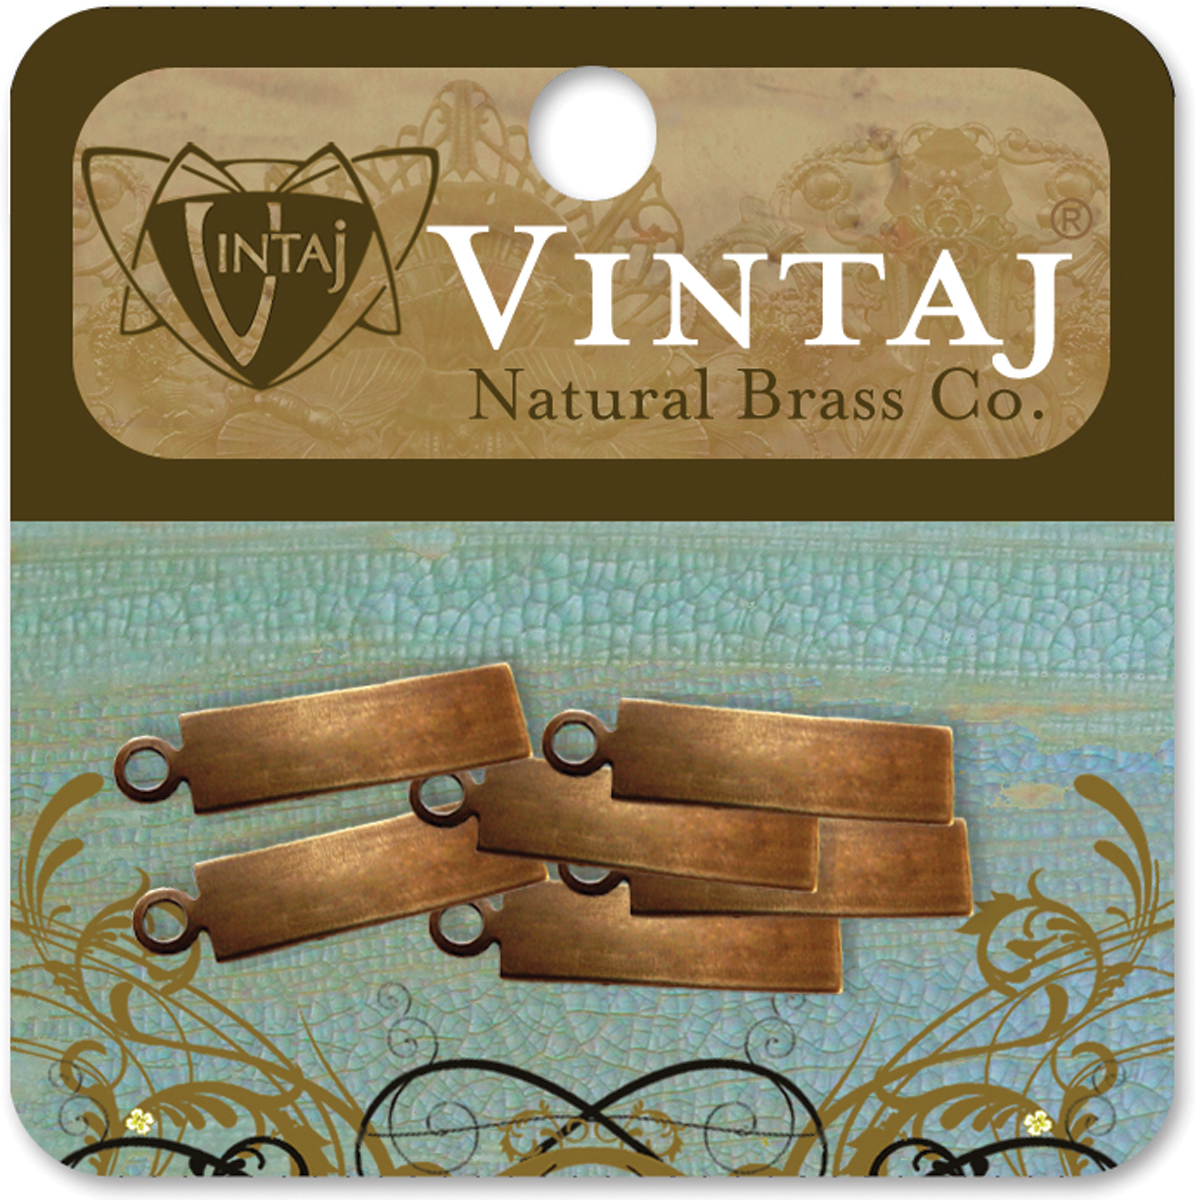 Vintaj Metal Altered Blanks 6pk, Rectangle Tag, 38mm x 14mm 6pk